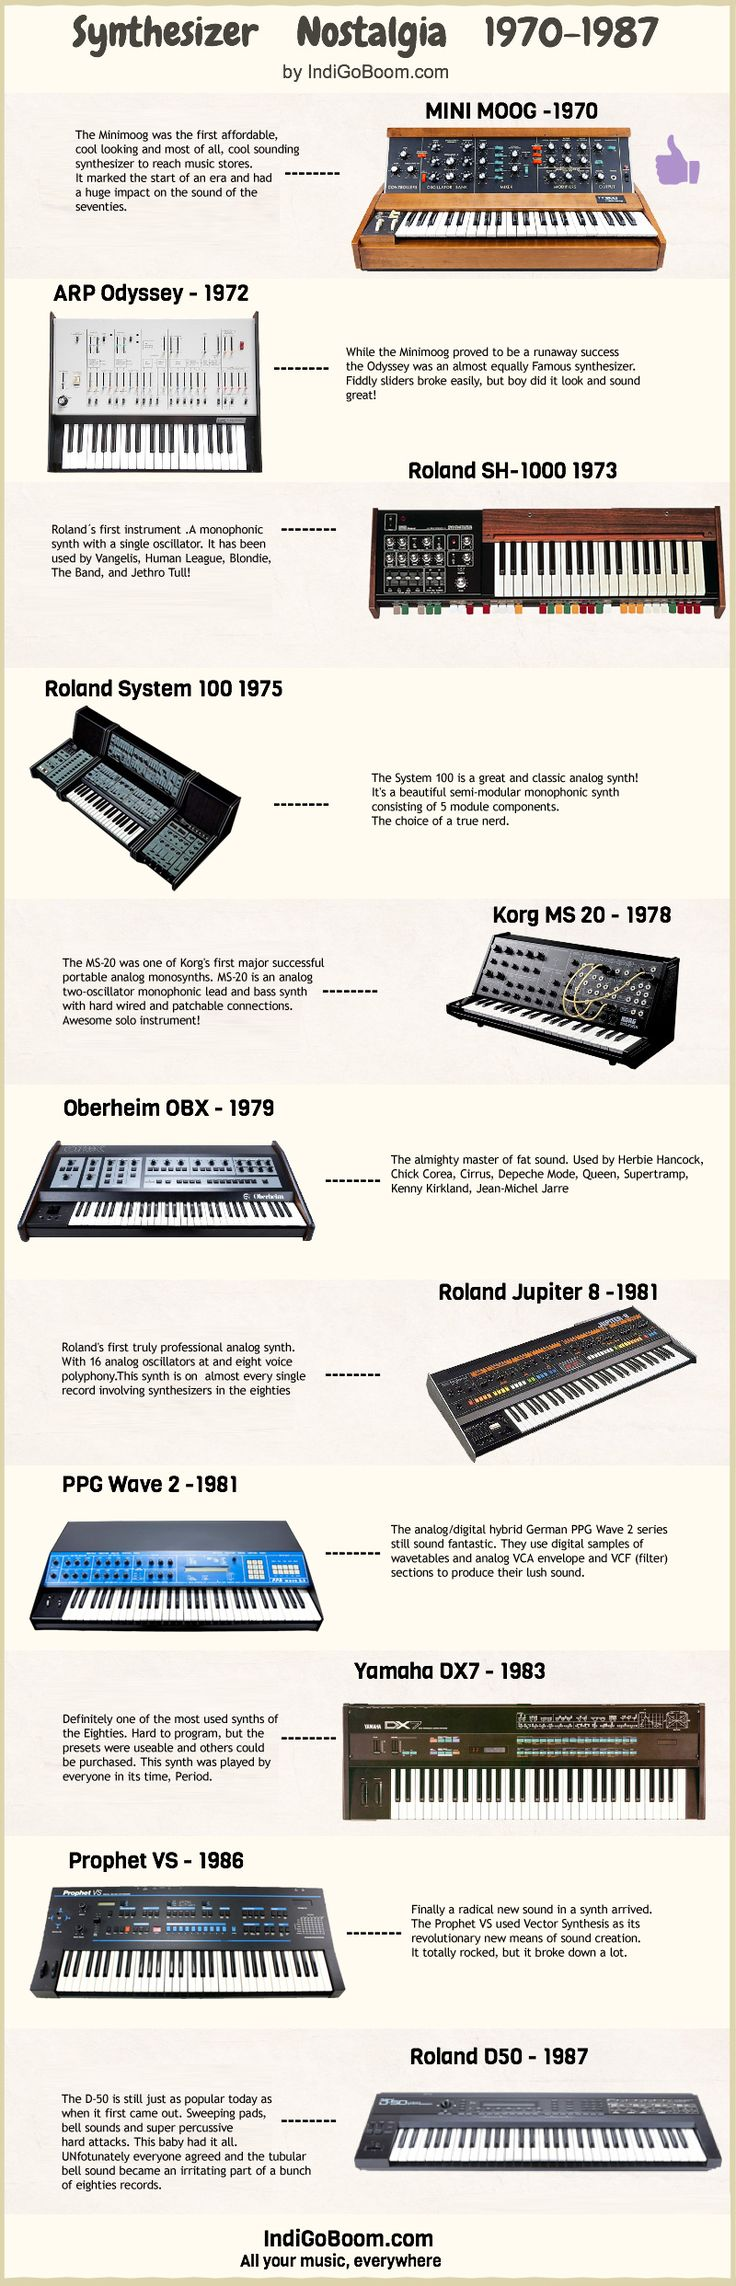 Mini Moog from 1970 started the journey of synthesizer, providing affordable synthesizer to musicians.The legacy is still being carried today by Roland which is equally popular as the time when it was first launched. This beautiful infographic to drool over is presented to you Indigoboom, an online music store helping independent music artists to sell music online.